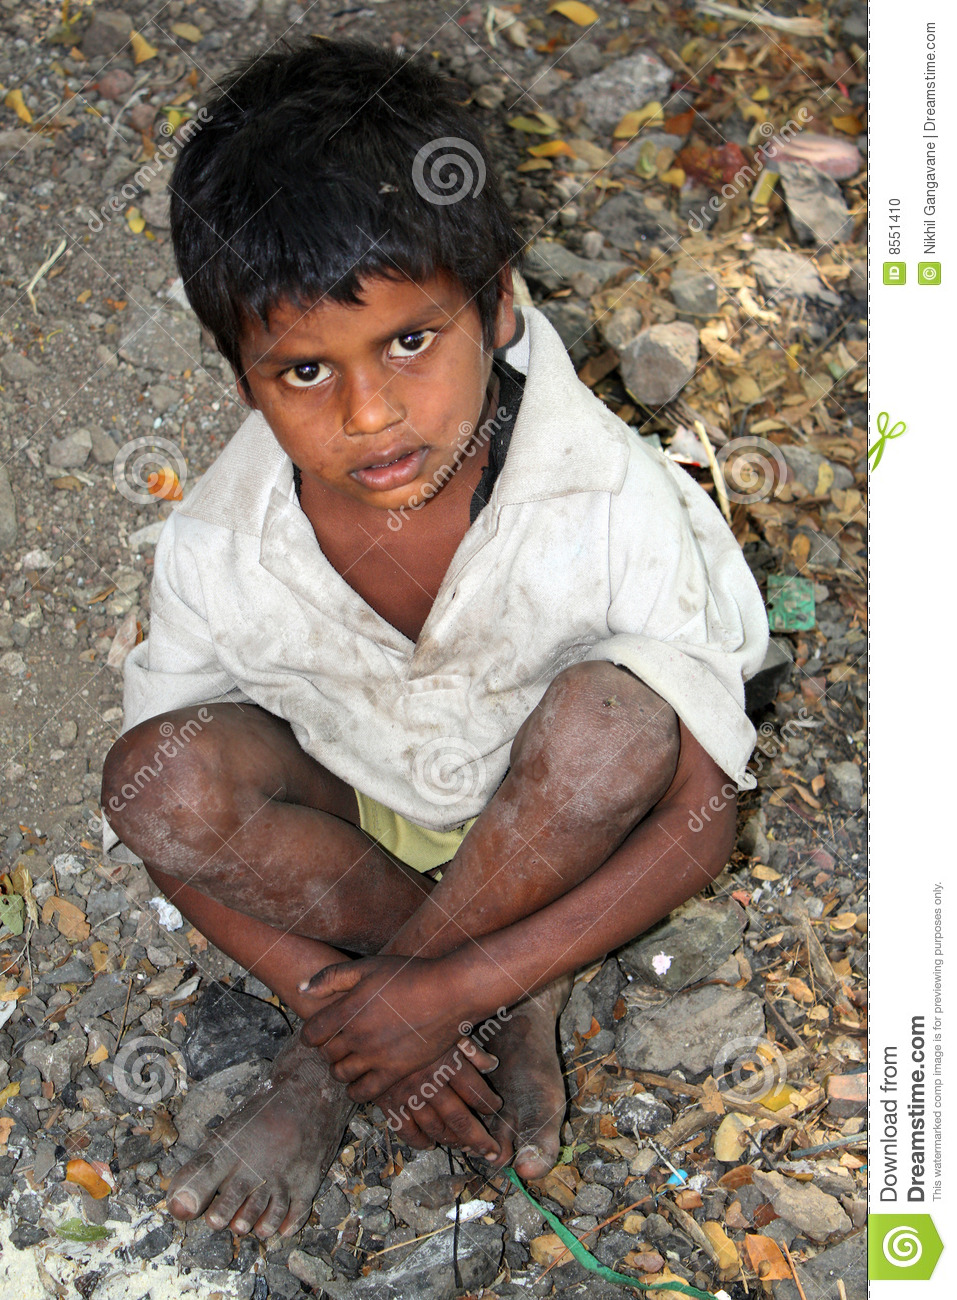 poor kid in India, sitting on the streetside.